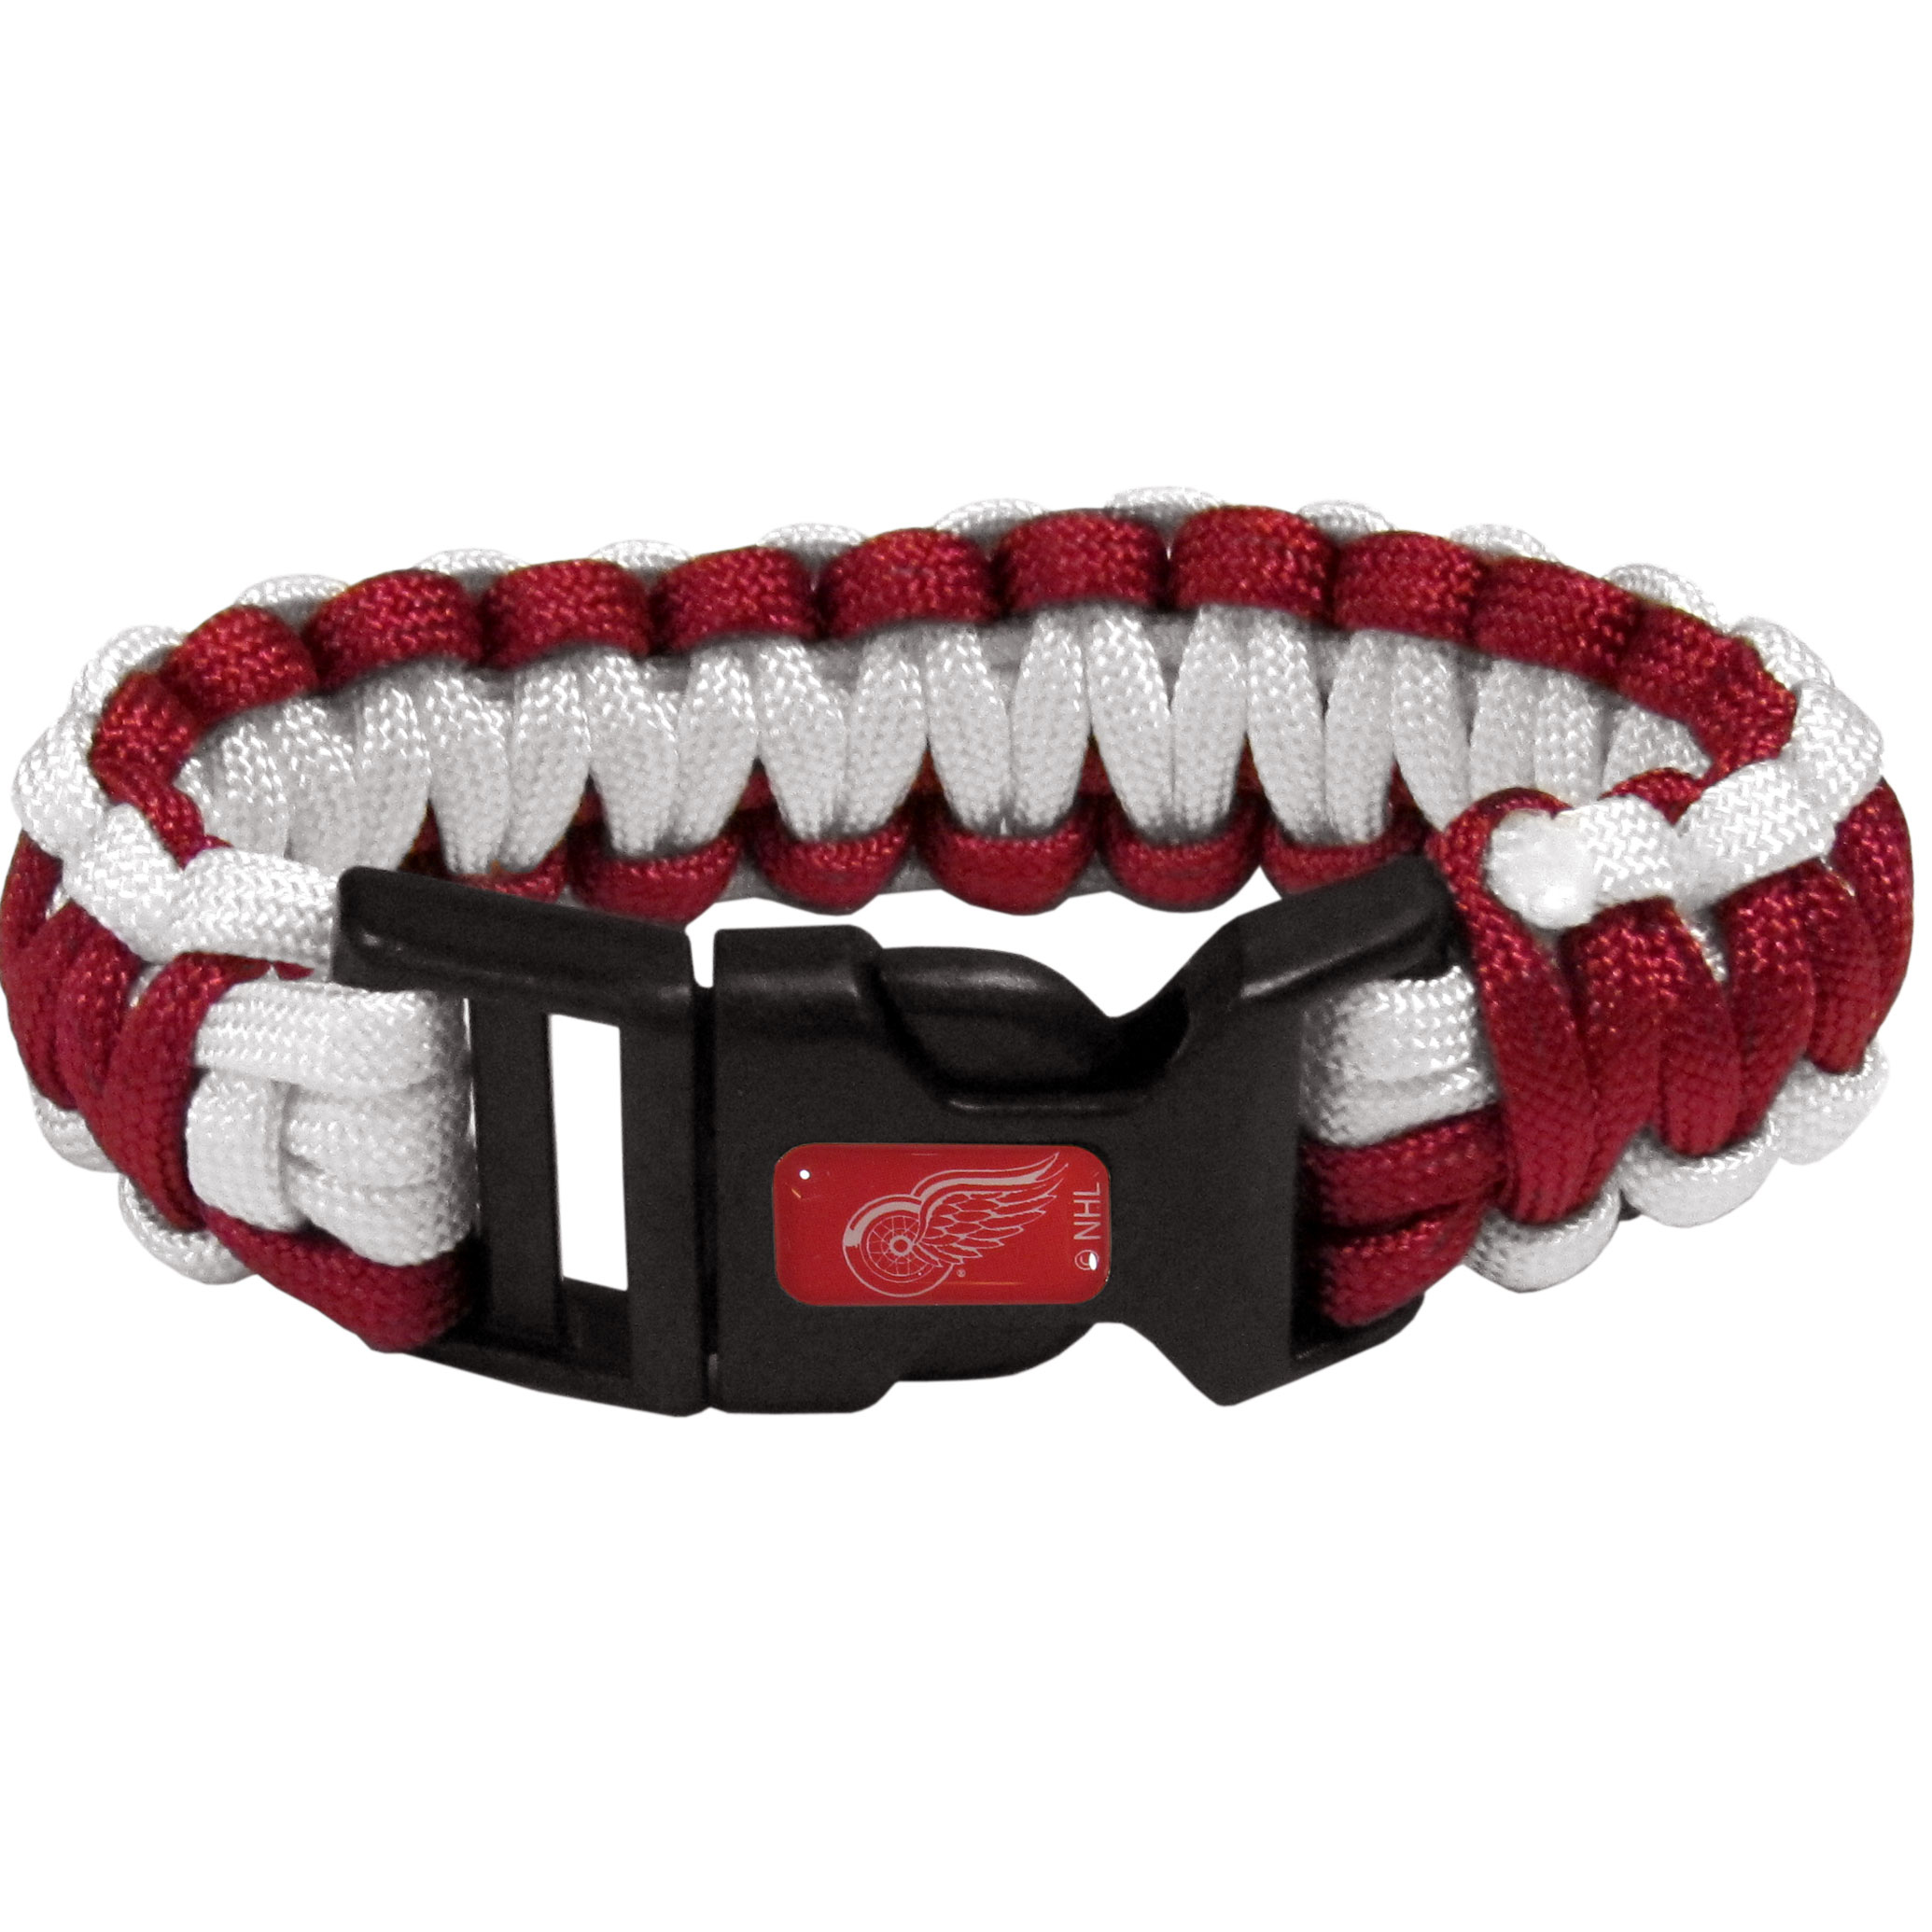 Detroit Red Wings® Survivor Bracelet - Our functional and fashionable Detroit Red Wings® survivor bracelets contain 2 individual 300lb test paracord rated cords that are each 5 feet long. The team colored cords can be pulled apart to be used in any number of emergencies and look great while worn. The bracelet features a team emblem on the clasp.